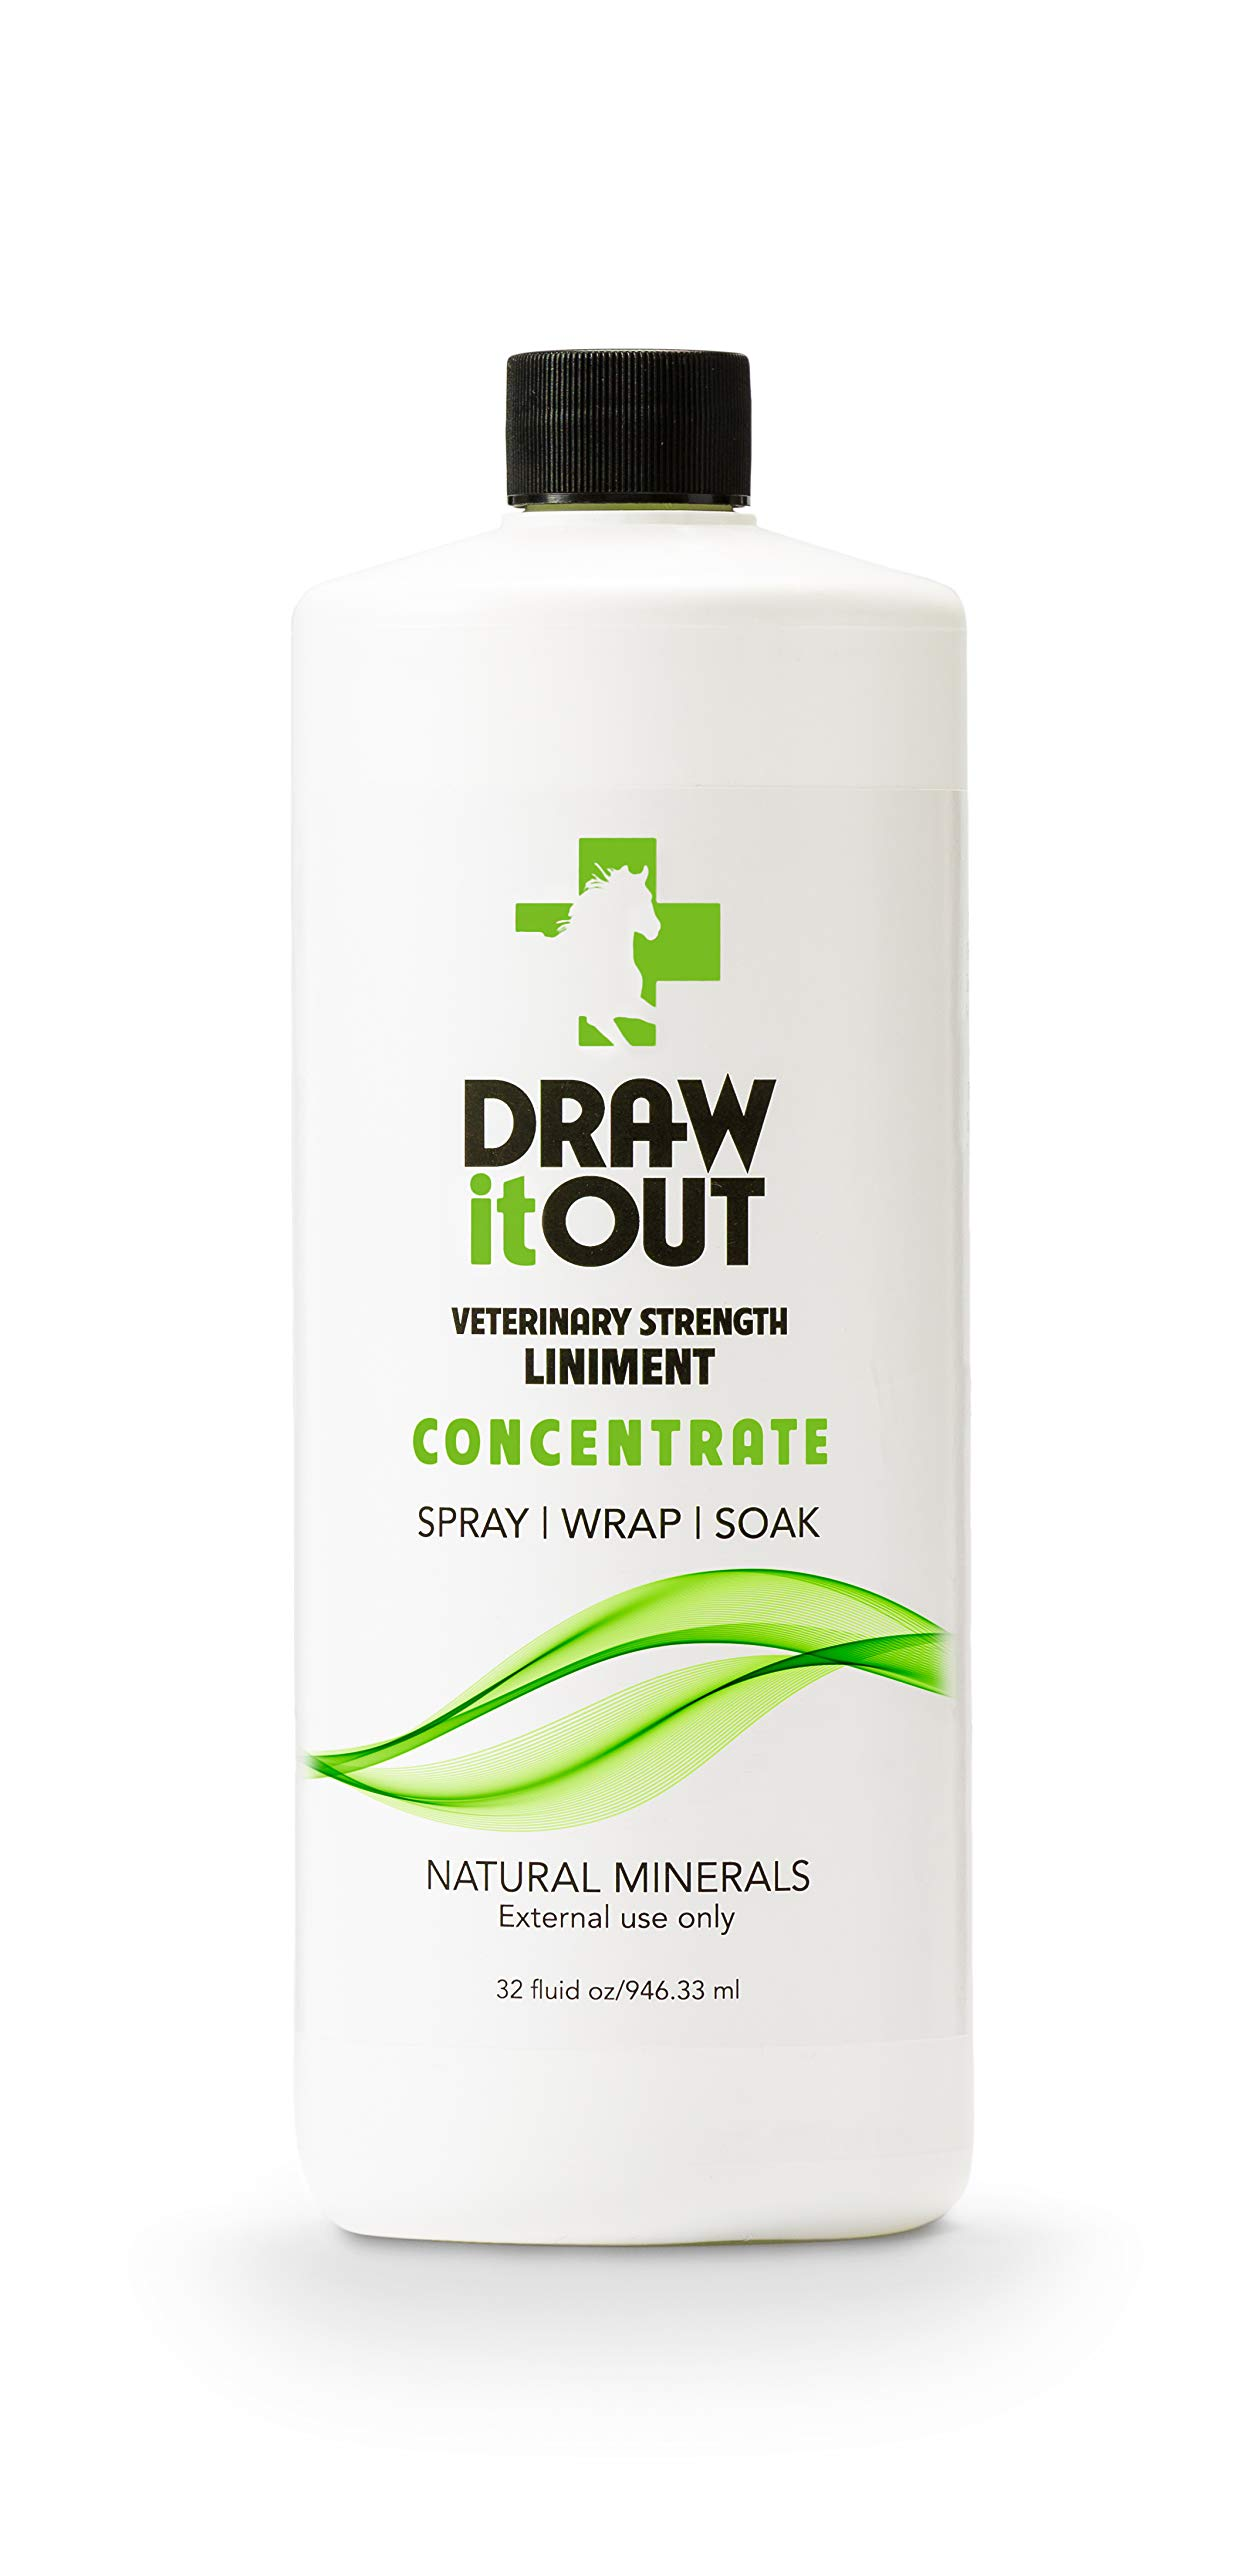 Draw It Out Veterinary Strength Liniment by Draw It Out USA